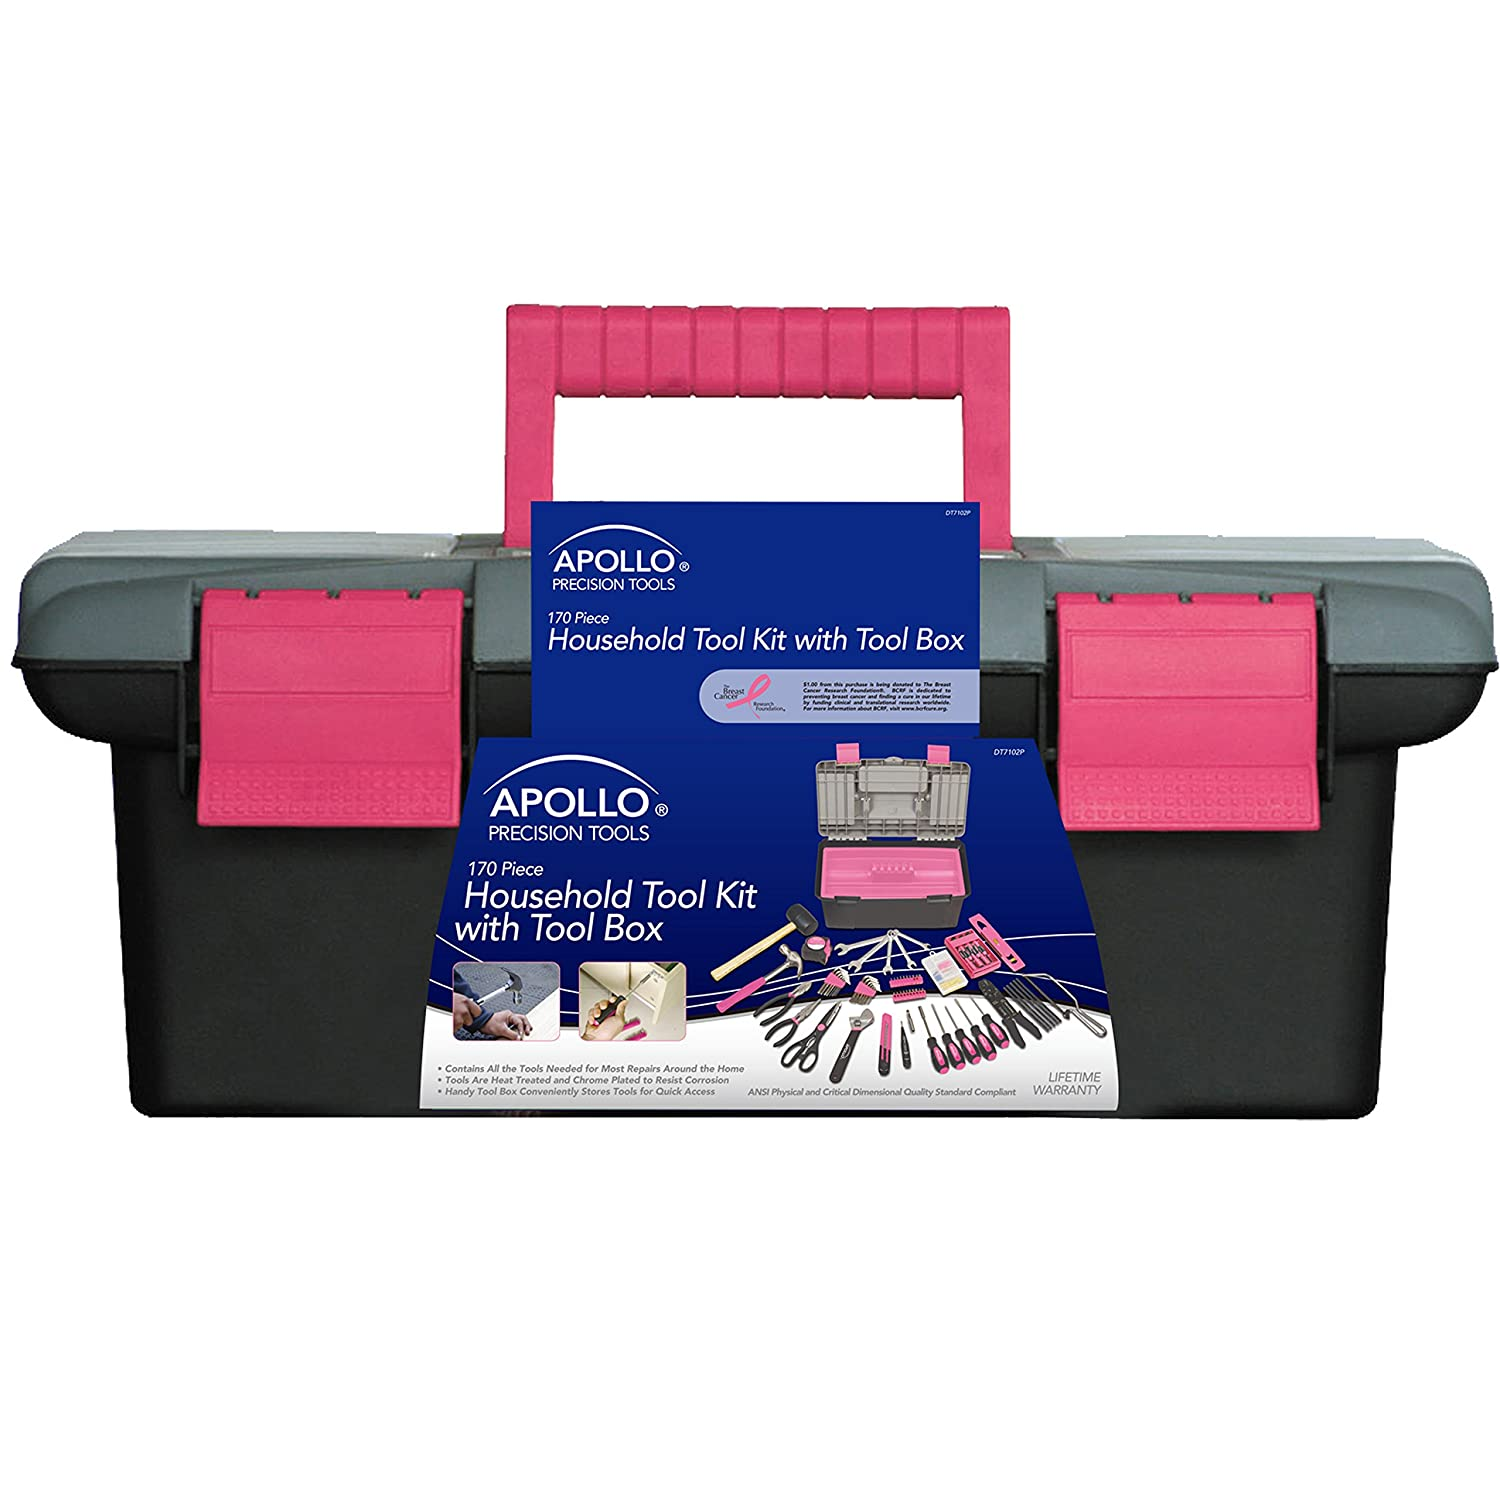 Apollo Precision Tools DT7102P Household Tool Kit with Tool Box Pink 170 Piece